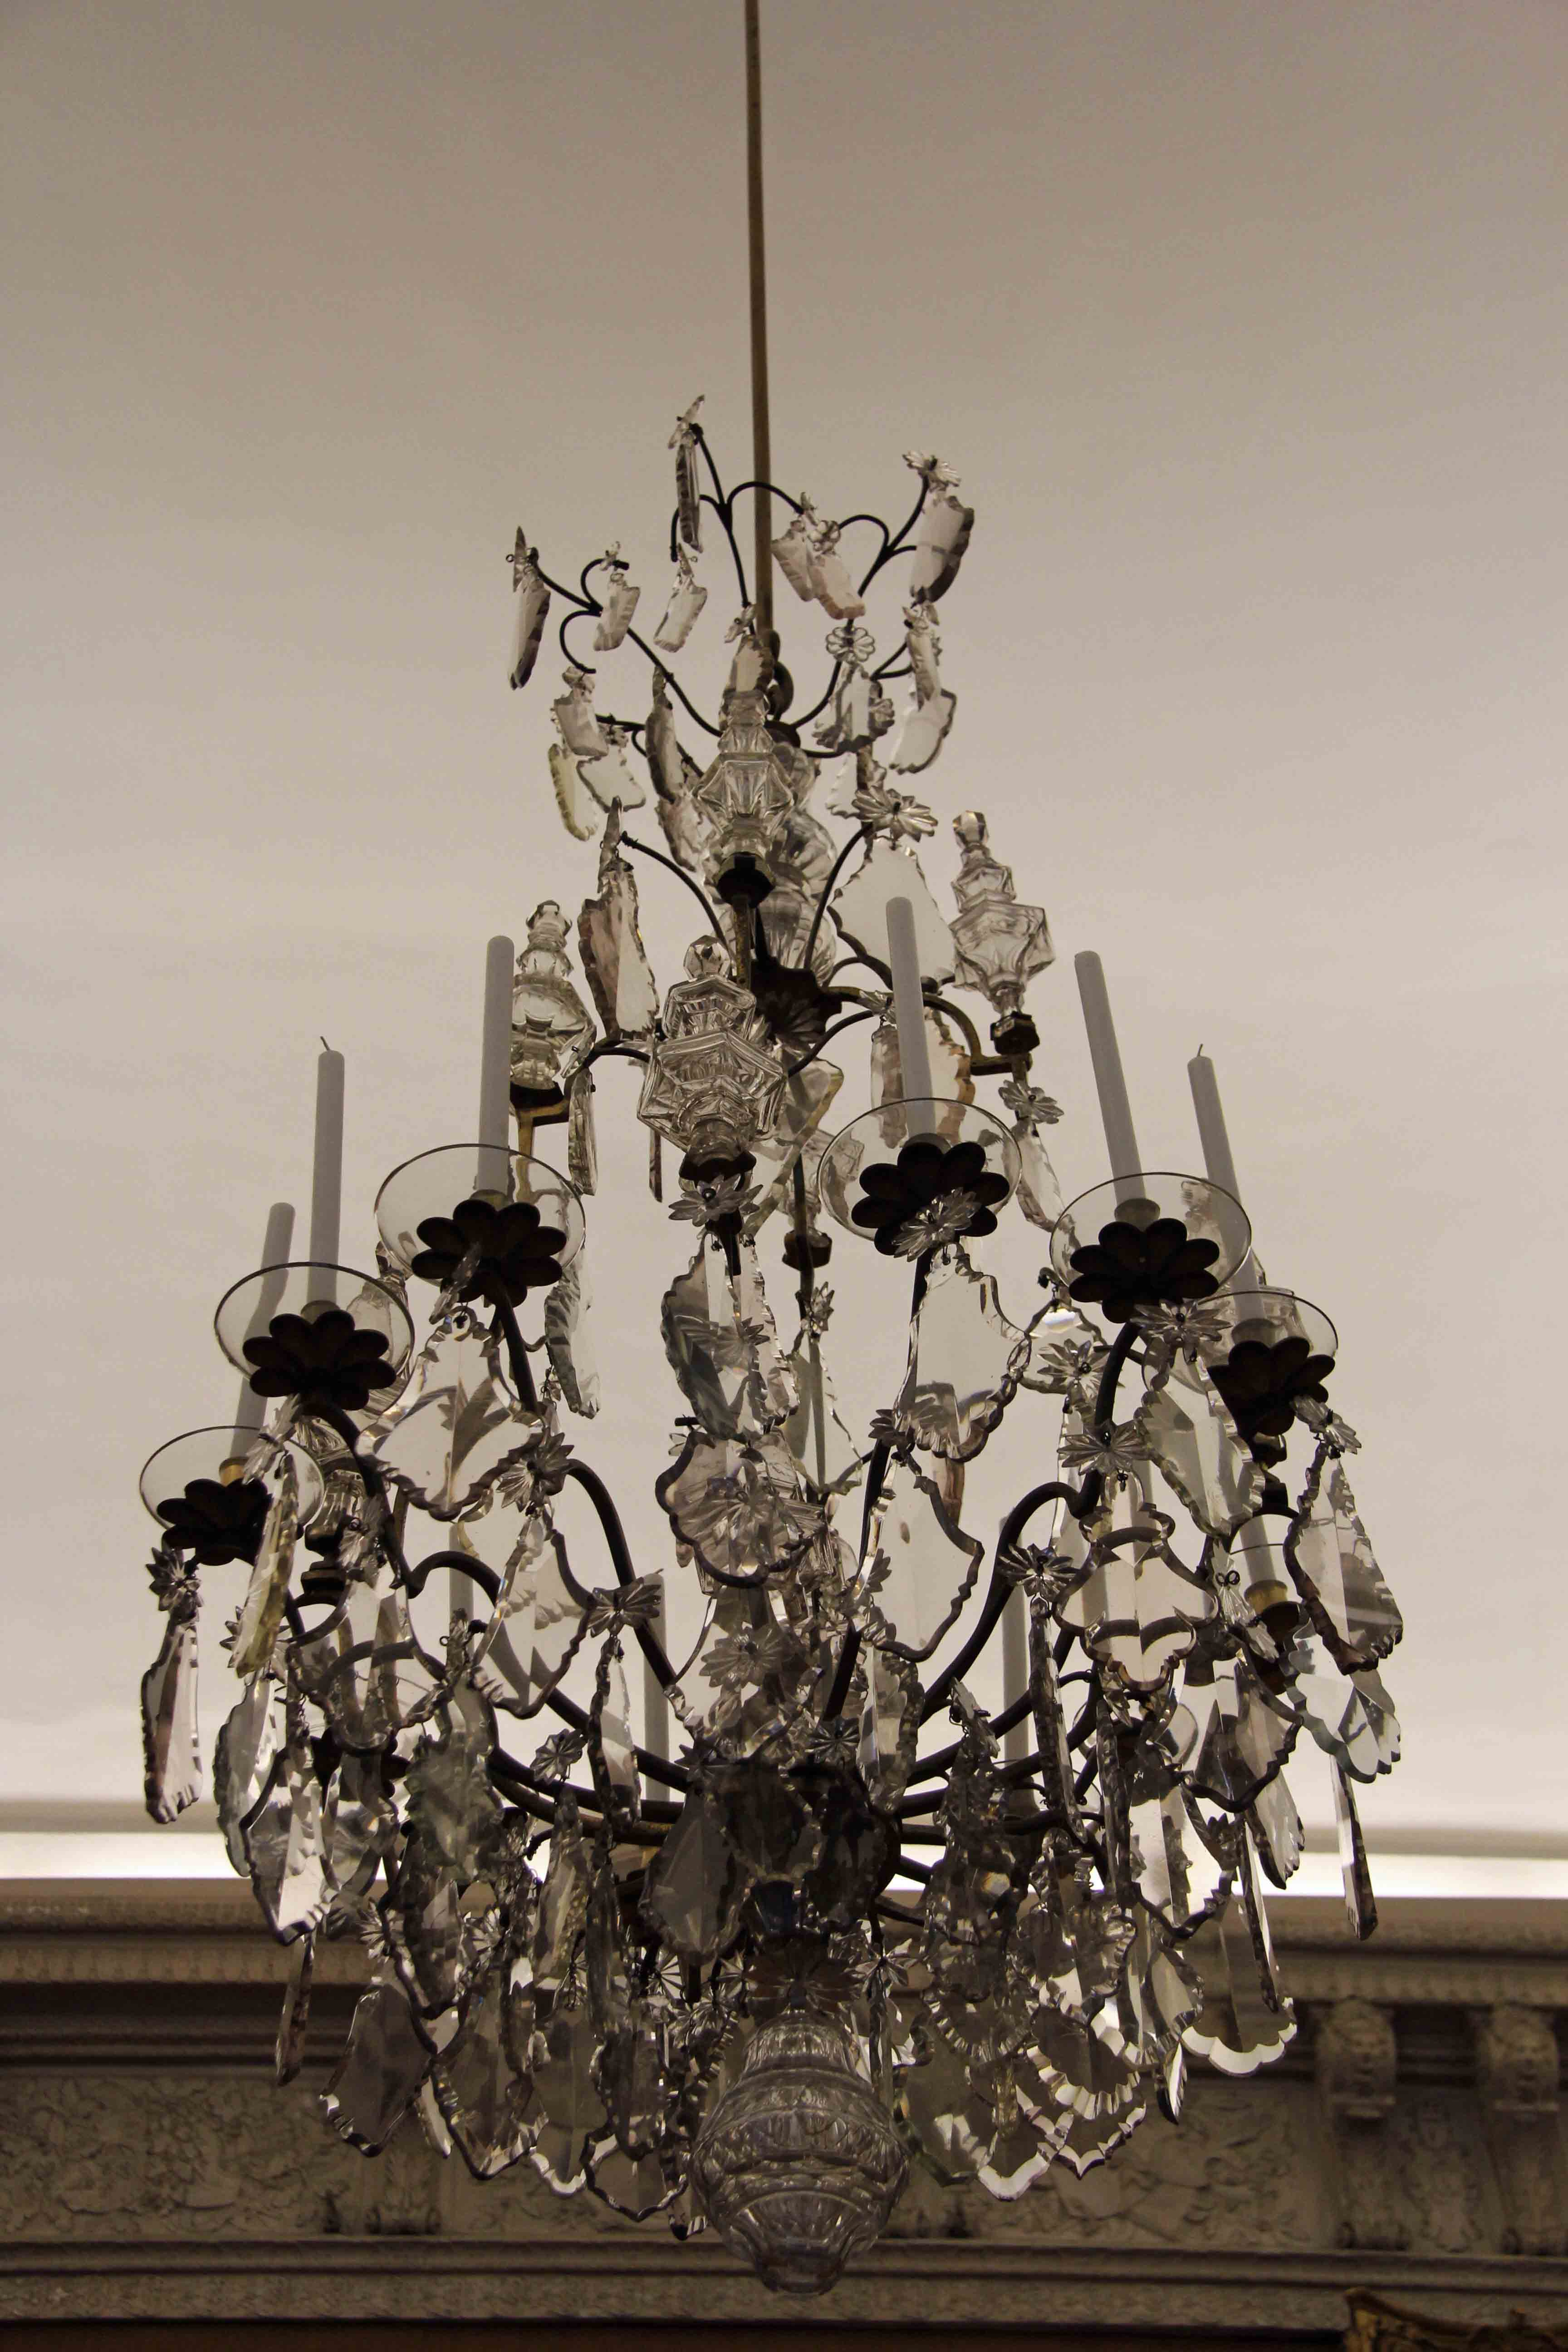 Chandelier at Schloss Charlottenburg in Berlin